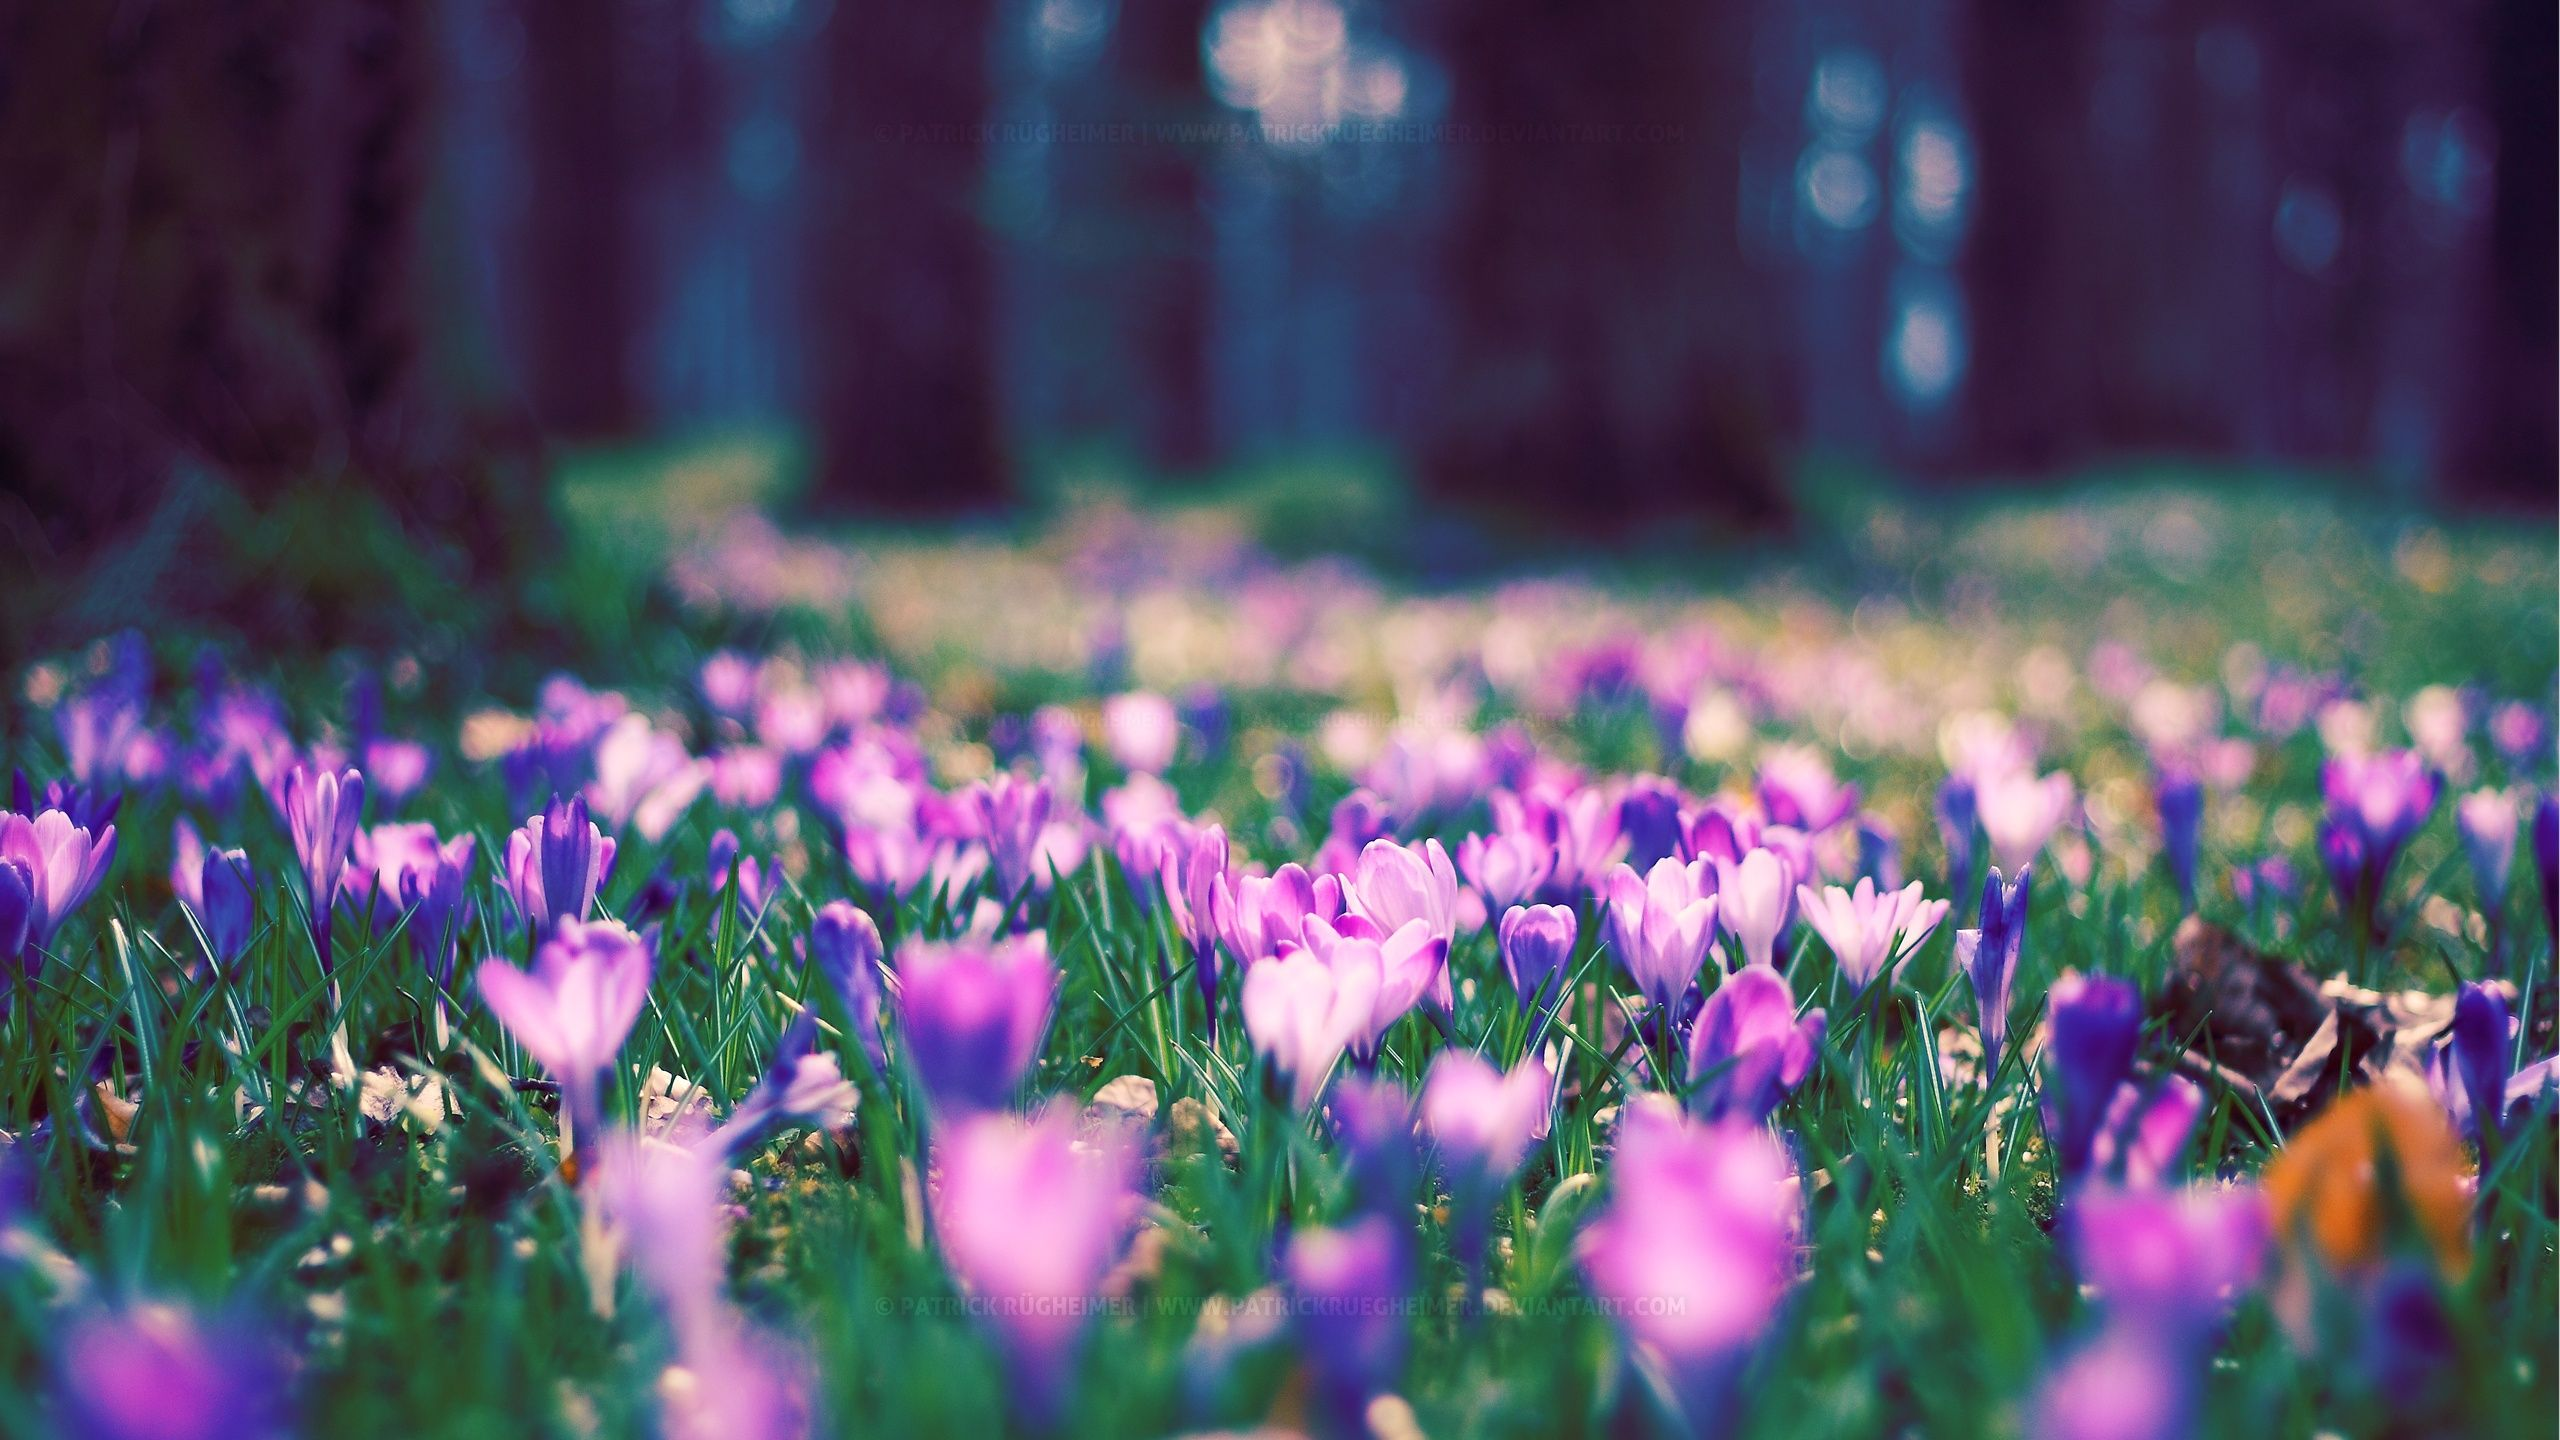 Spring flowers wallpaper nature wallpapers for free download about spring flowers wallpaper nature wallpapers for free download about mightylinksfo